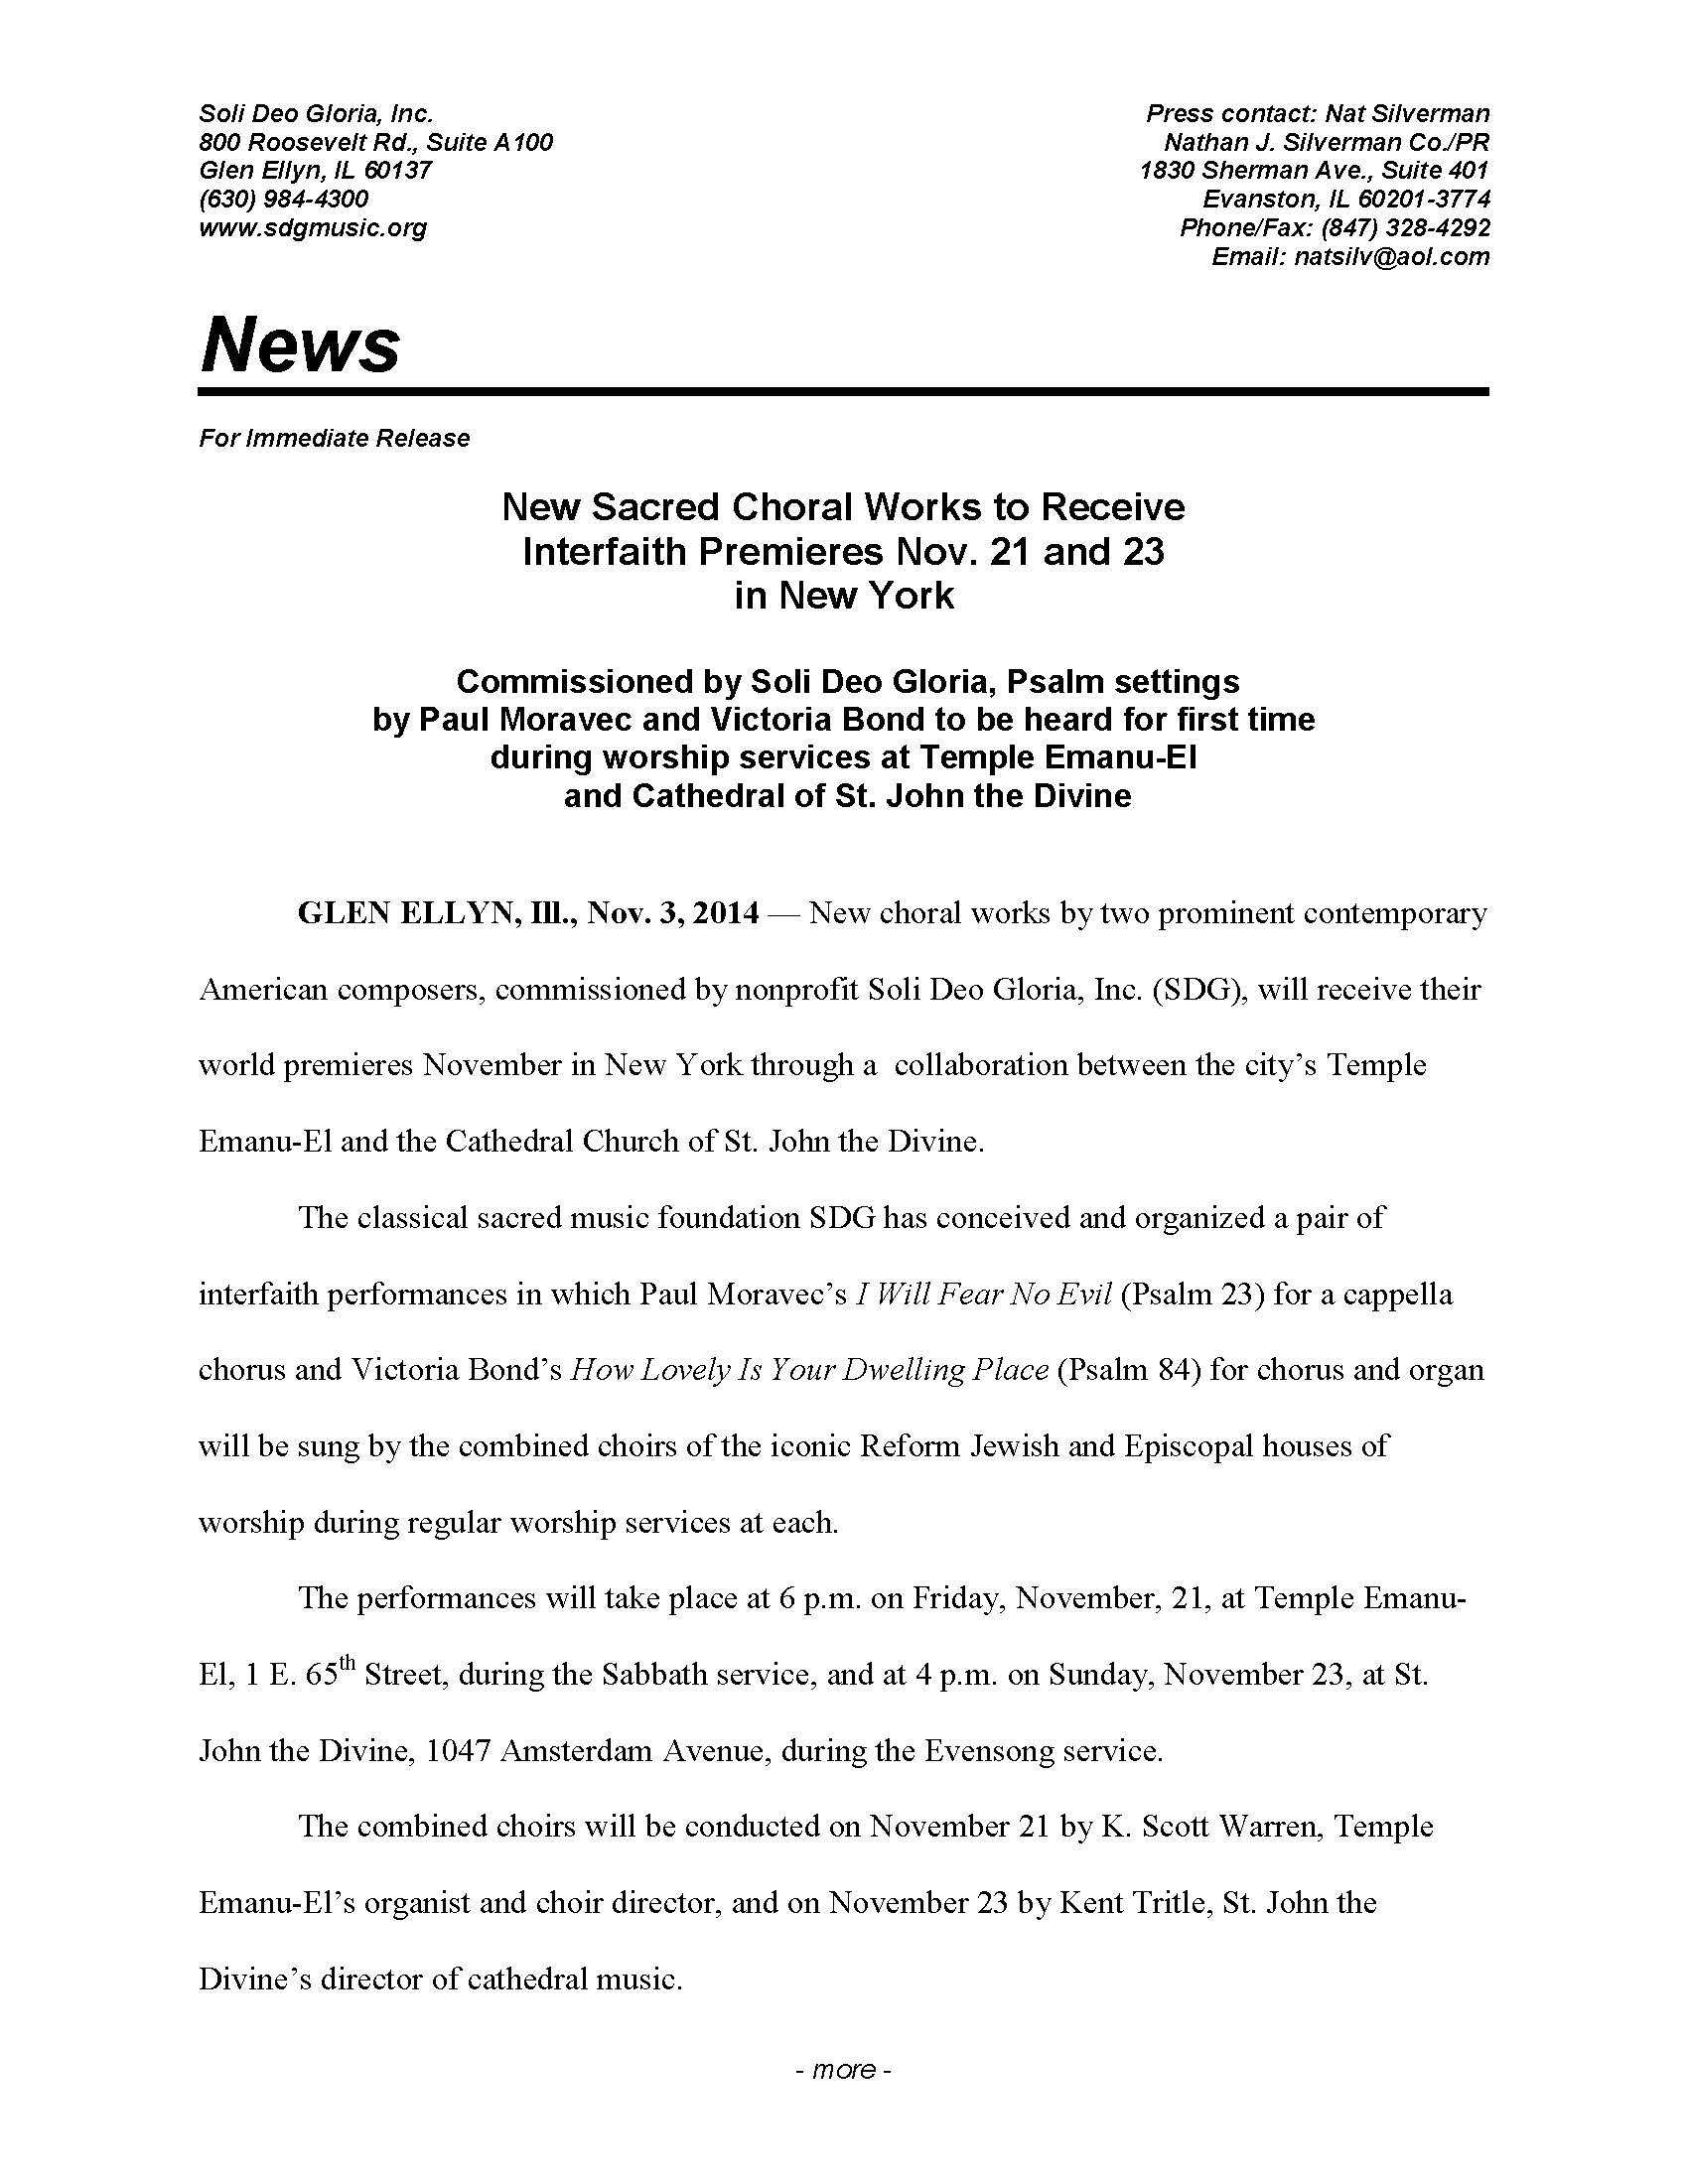 NYC Psalms Project press release